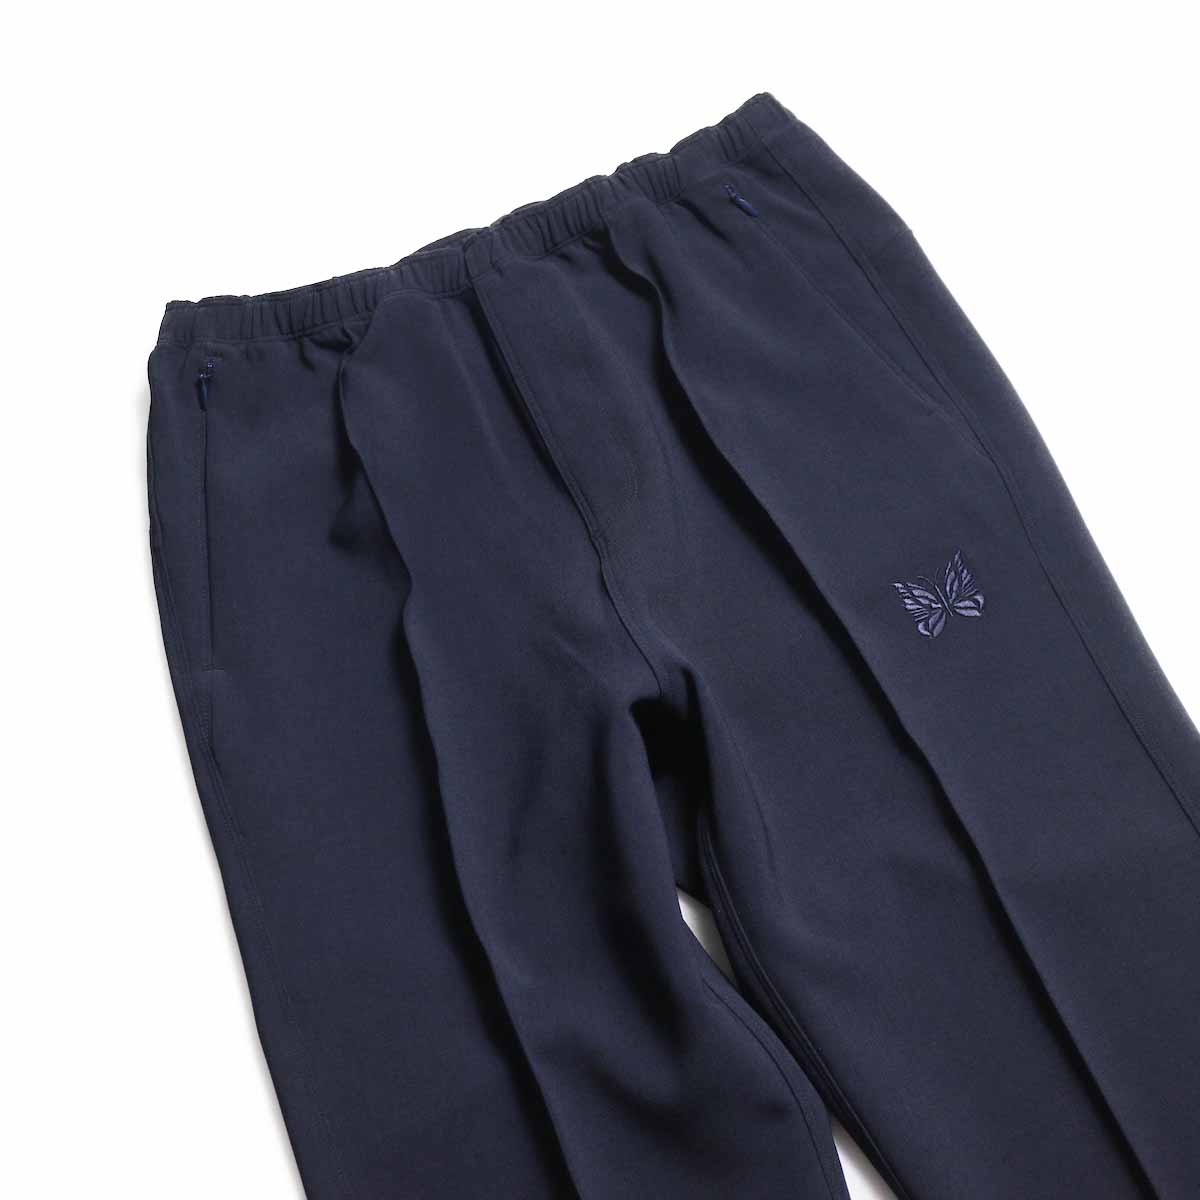 NEEDLES / Warm-Up Pant -Poly Double Cloth (Navy) ウエスト